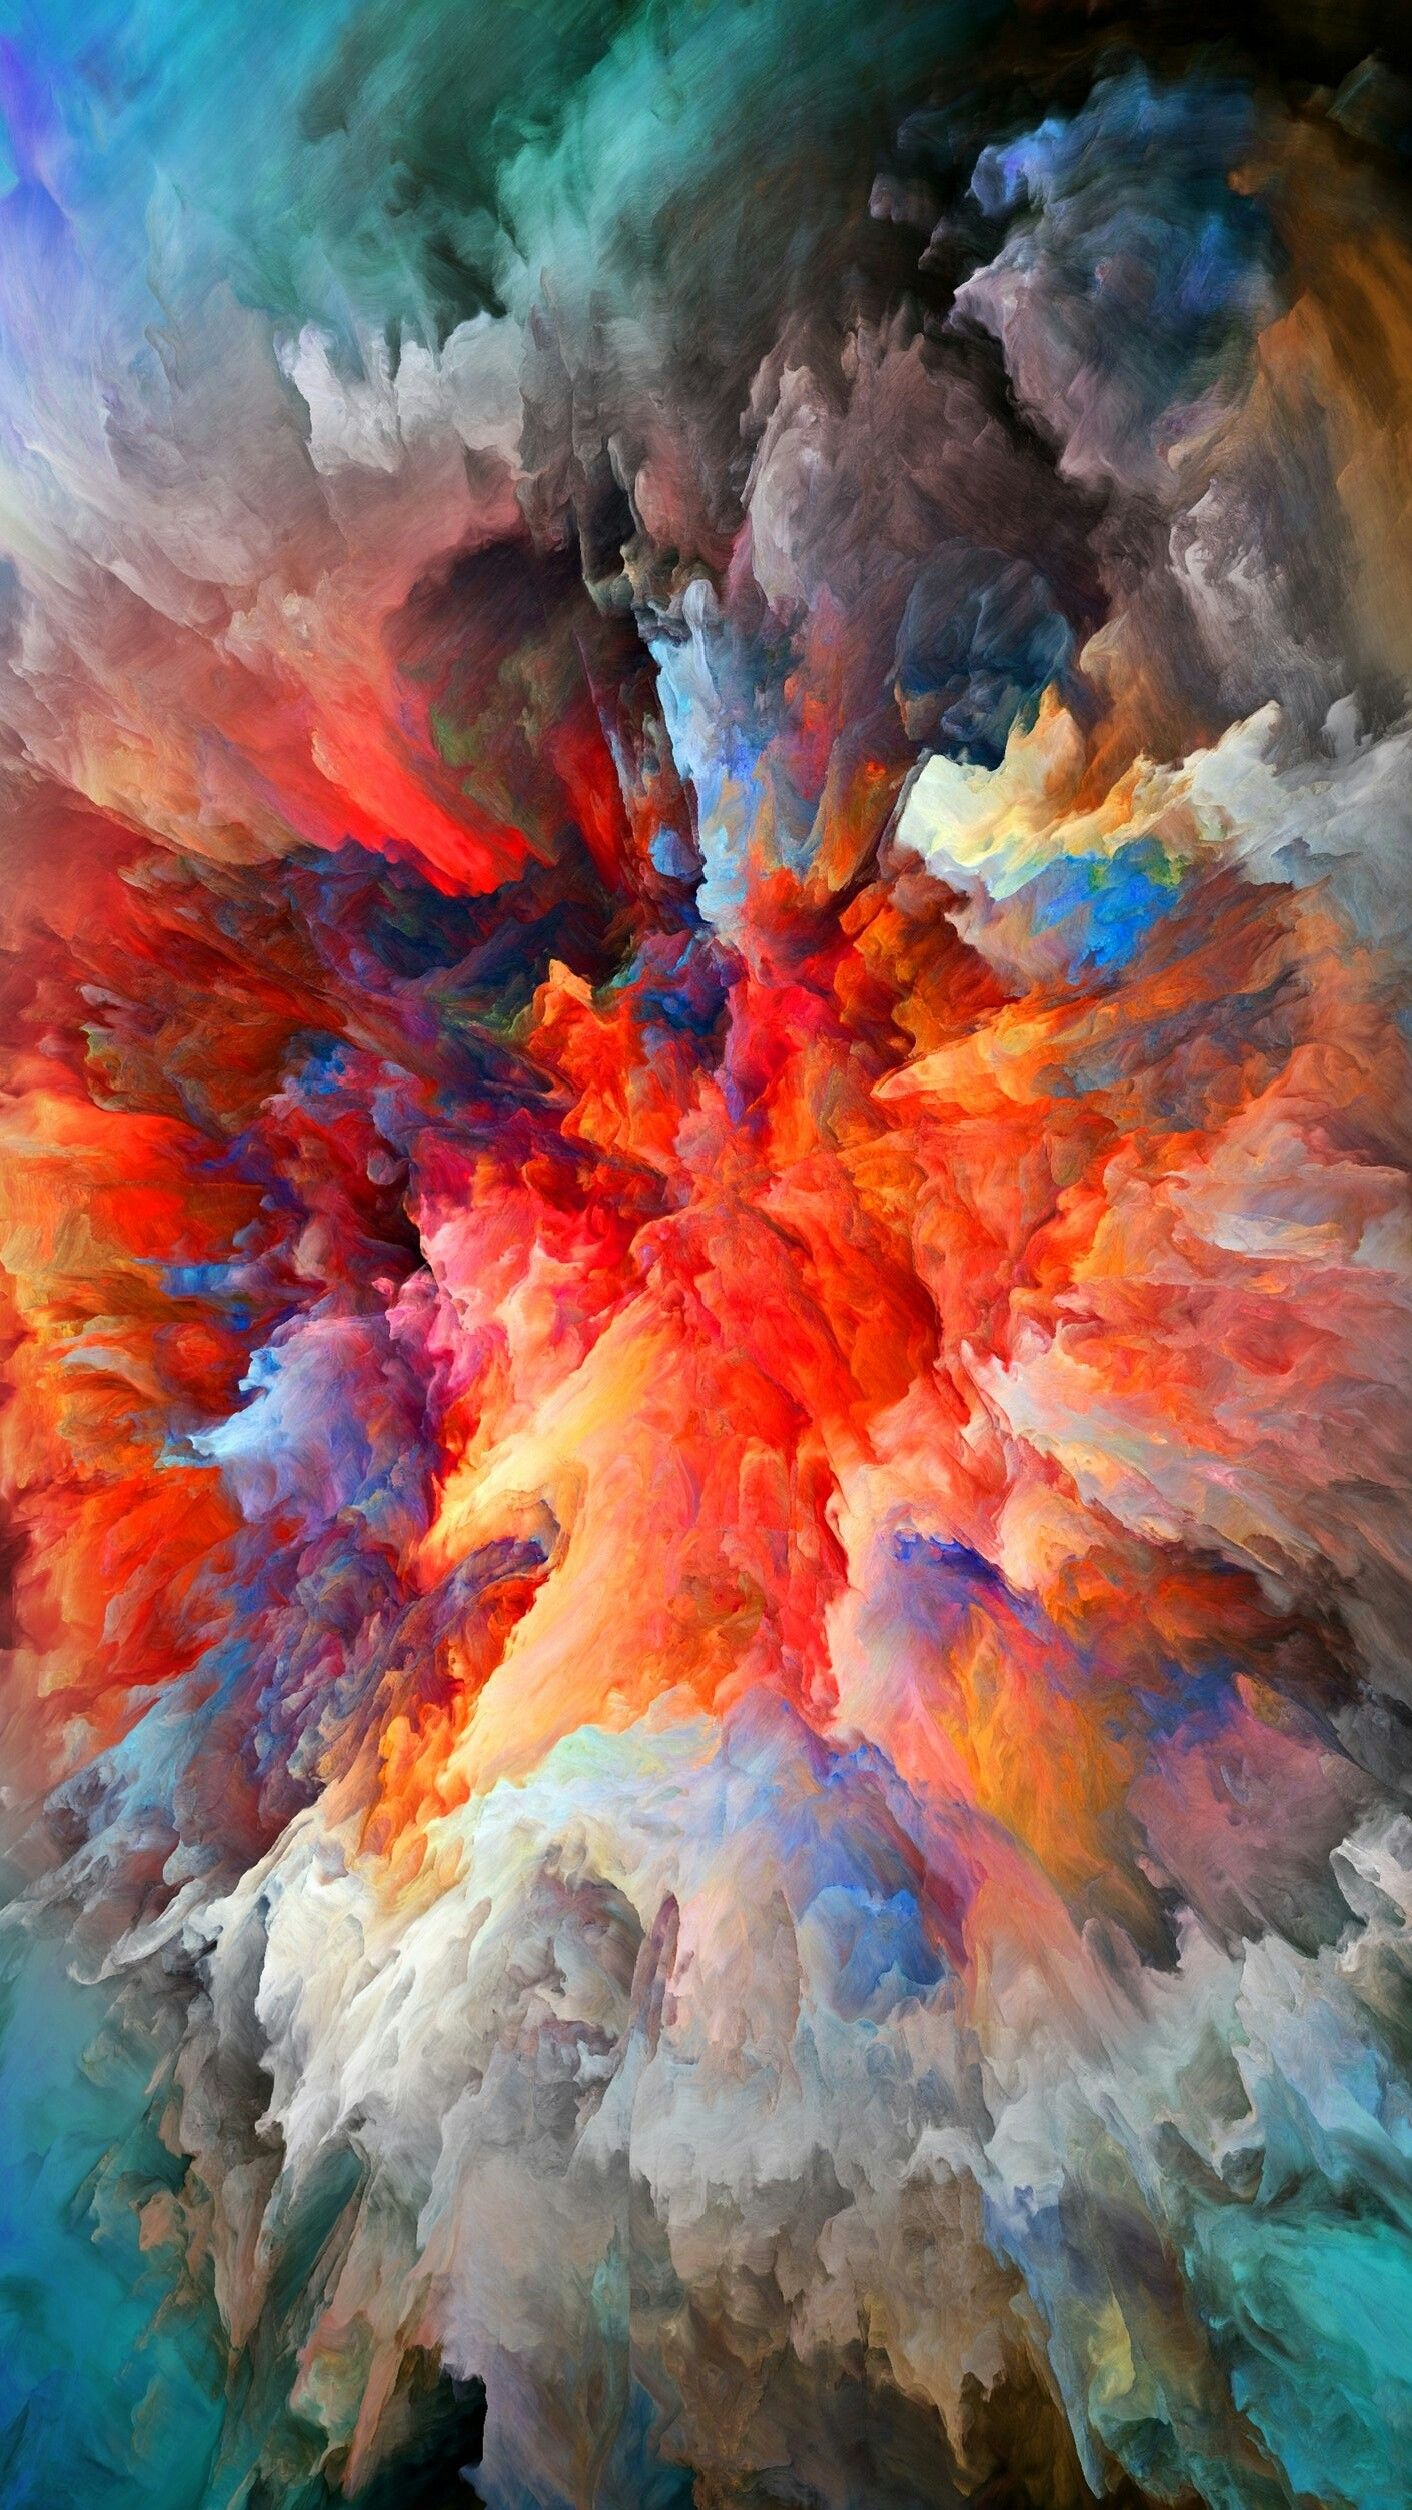 colorful smoke explosion   Wallpapers